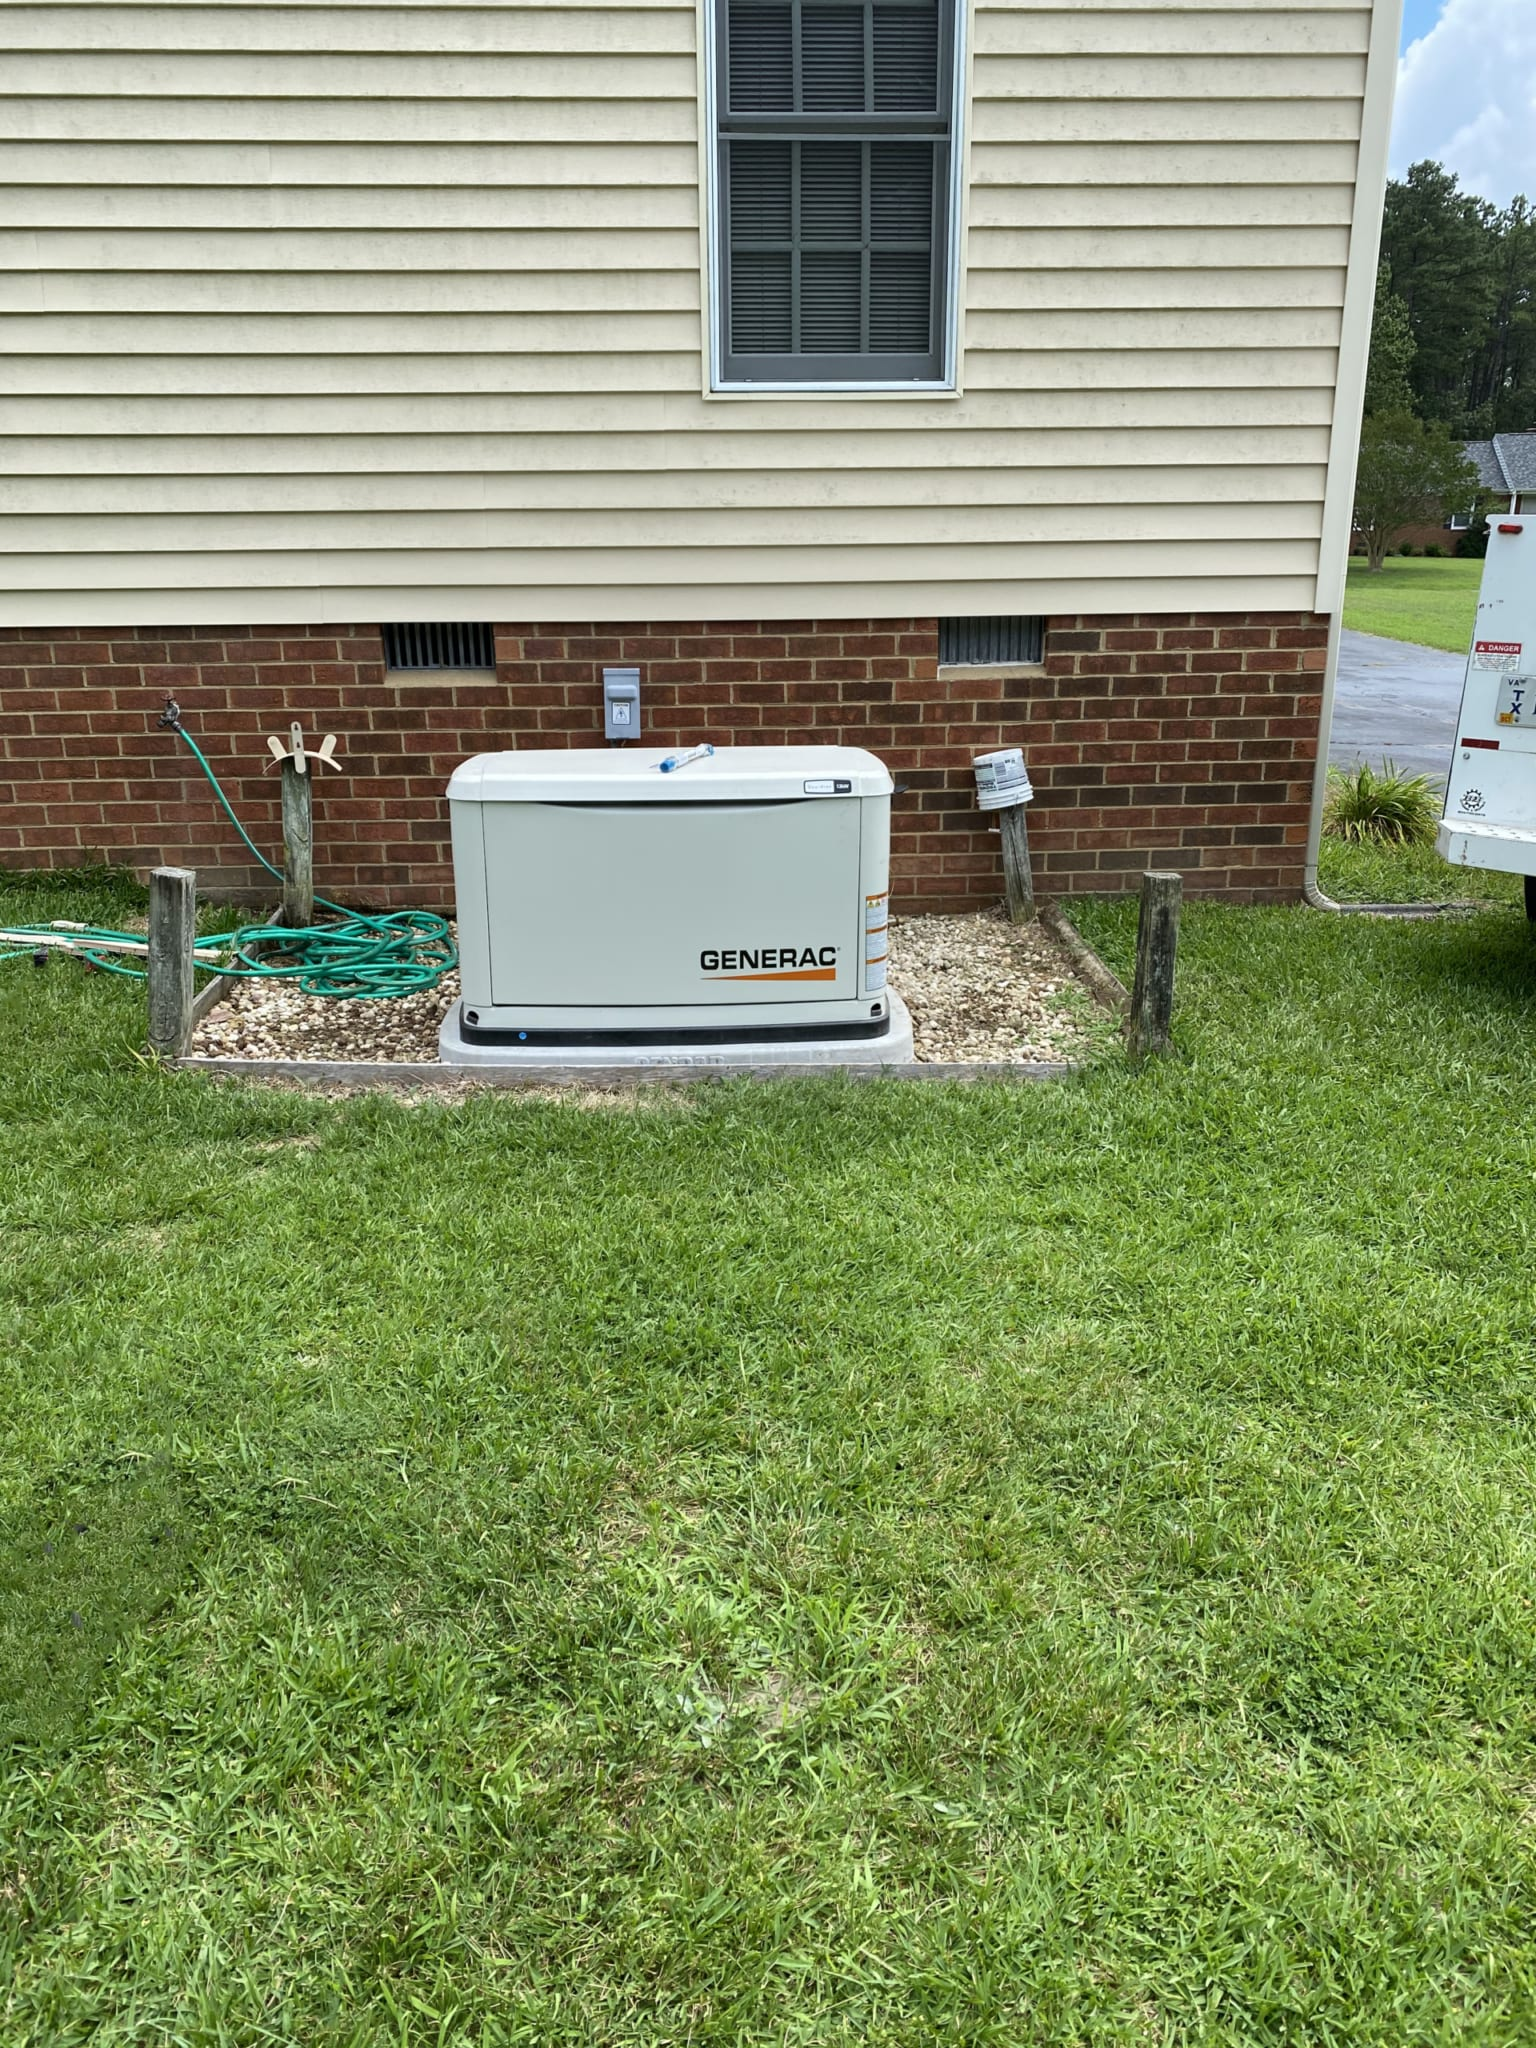 7.8.20 Chesterfield 2 Generac Automatic Standby Generator Far